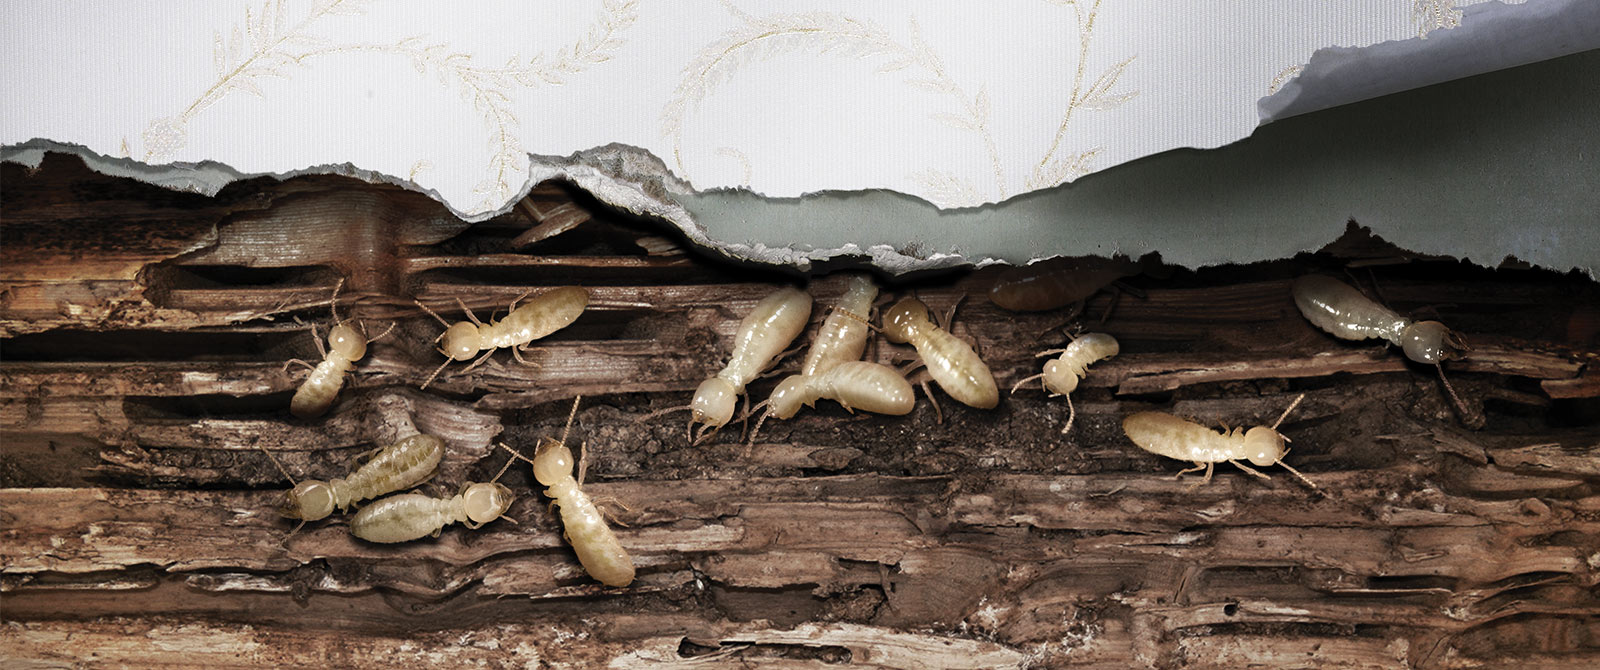 Termites Inside the Wall